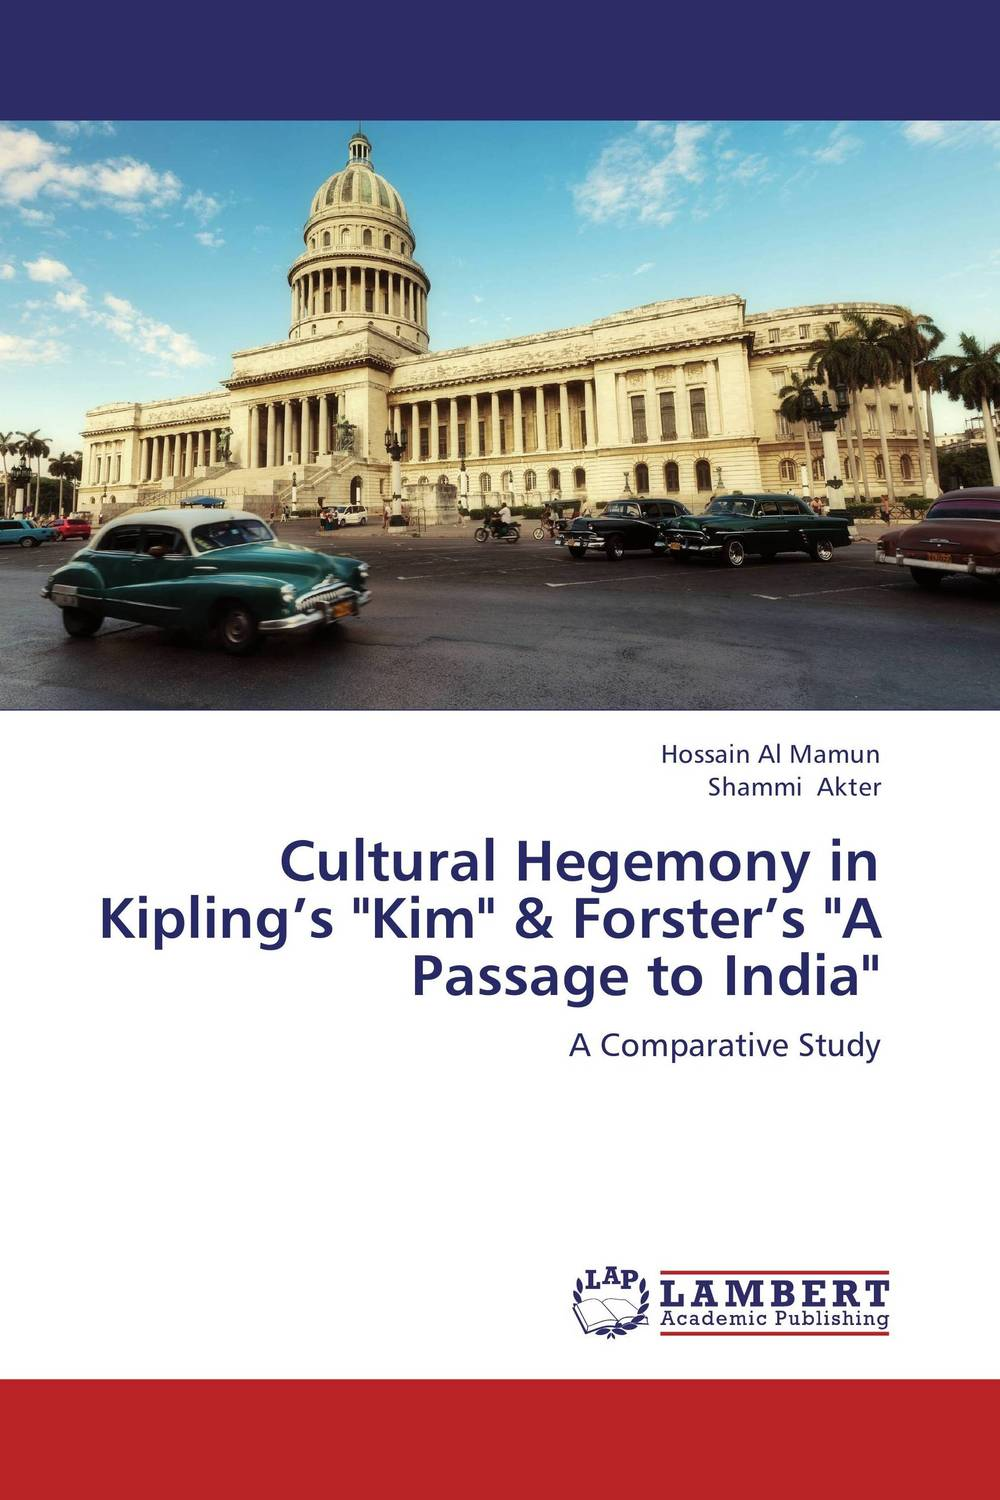 Cultural Hegemony in Kipling's Kim & Forster's A Passage to India contesting hegemony